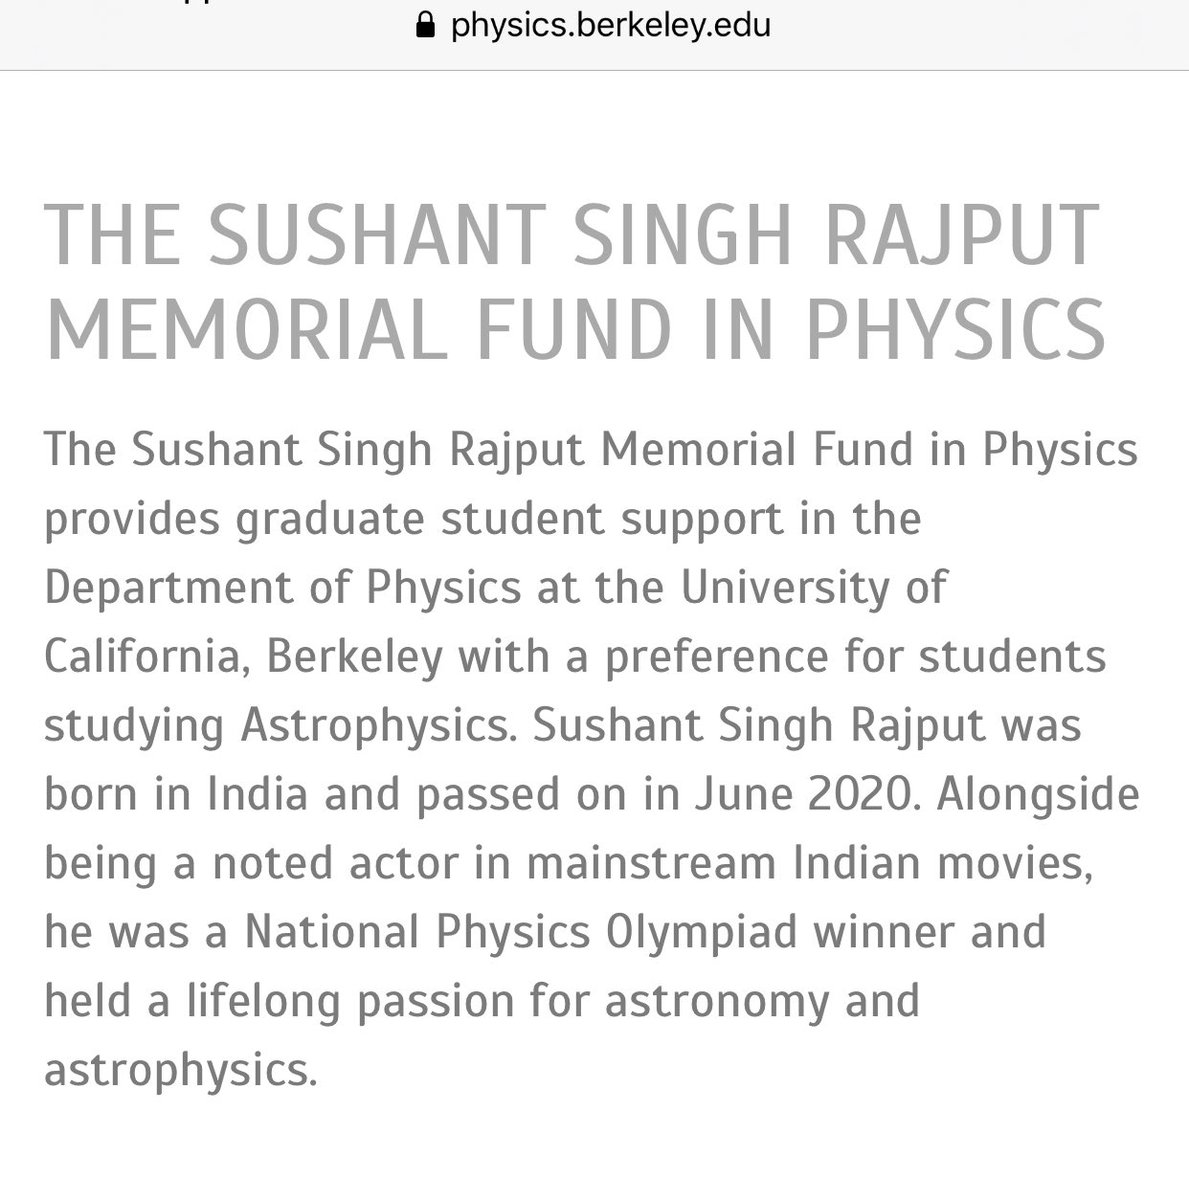 Anyone interested in pursuing Astrophysics at UC Berkeley can apply for this fund. Grateful to the Angels who made it possible. 🙏 Happy Birthday my little Brother, I hope you always stay happy wherever you are! Love You ❤️#SushantDay